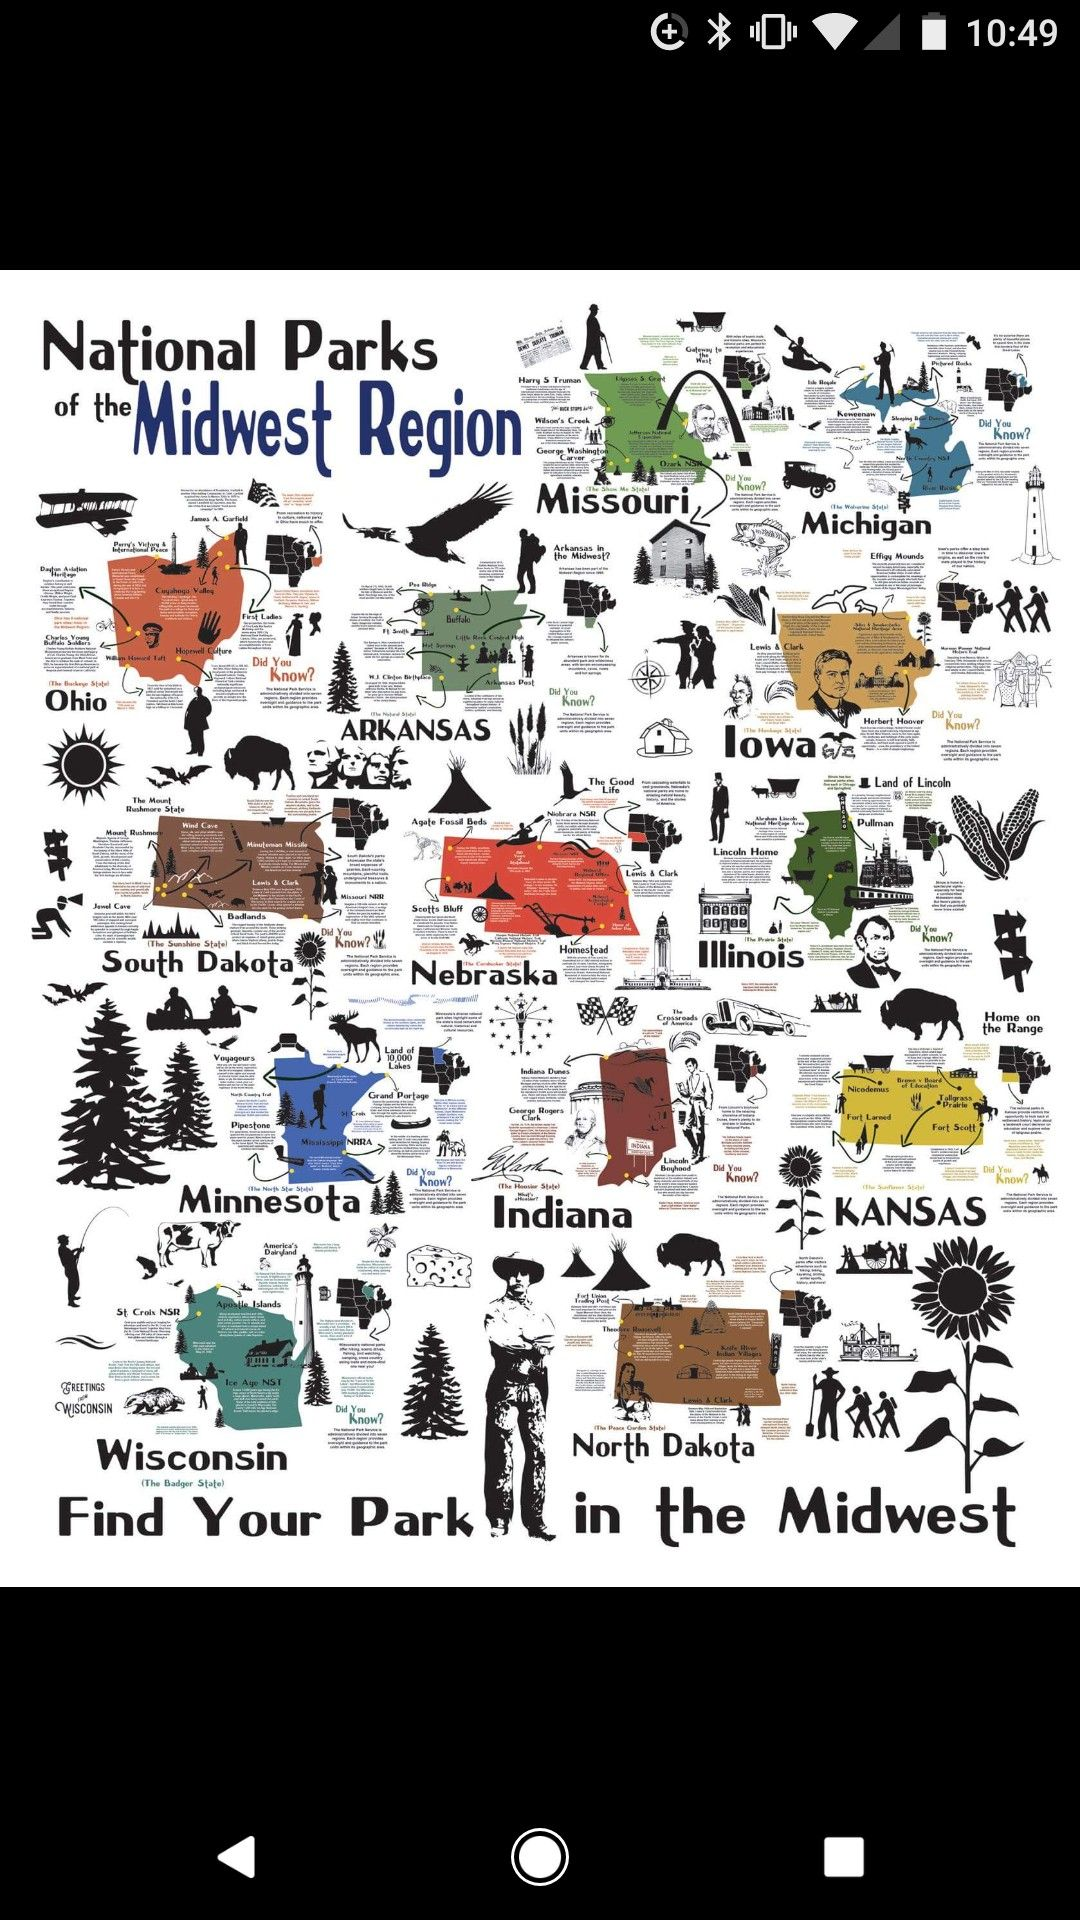 Find your park midwest michigan ohio midwest region